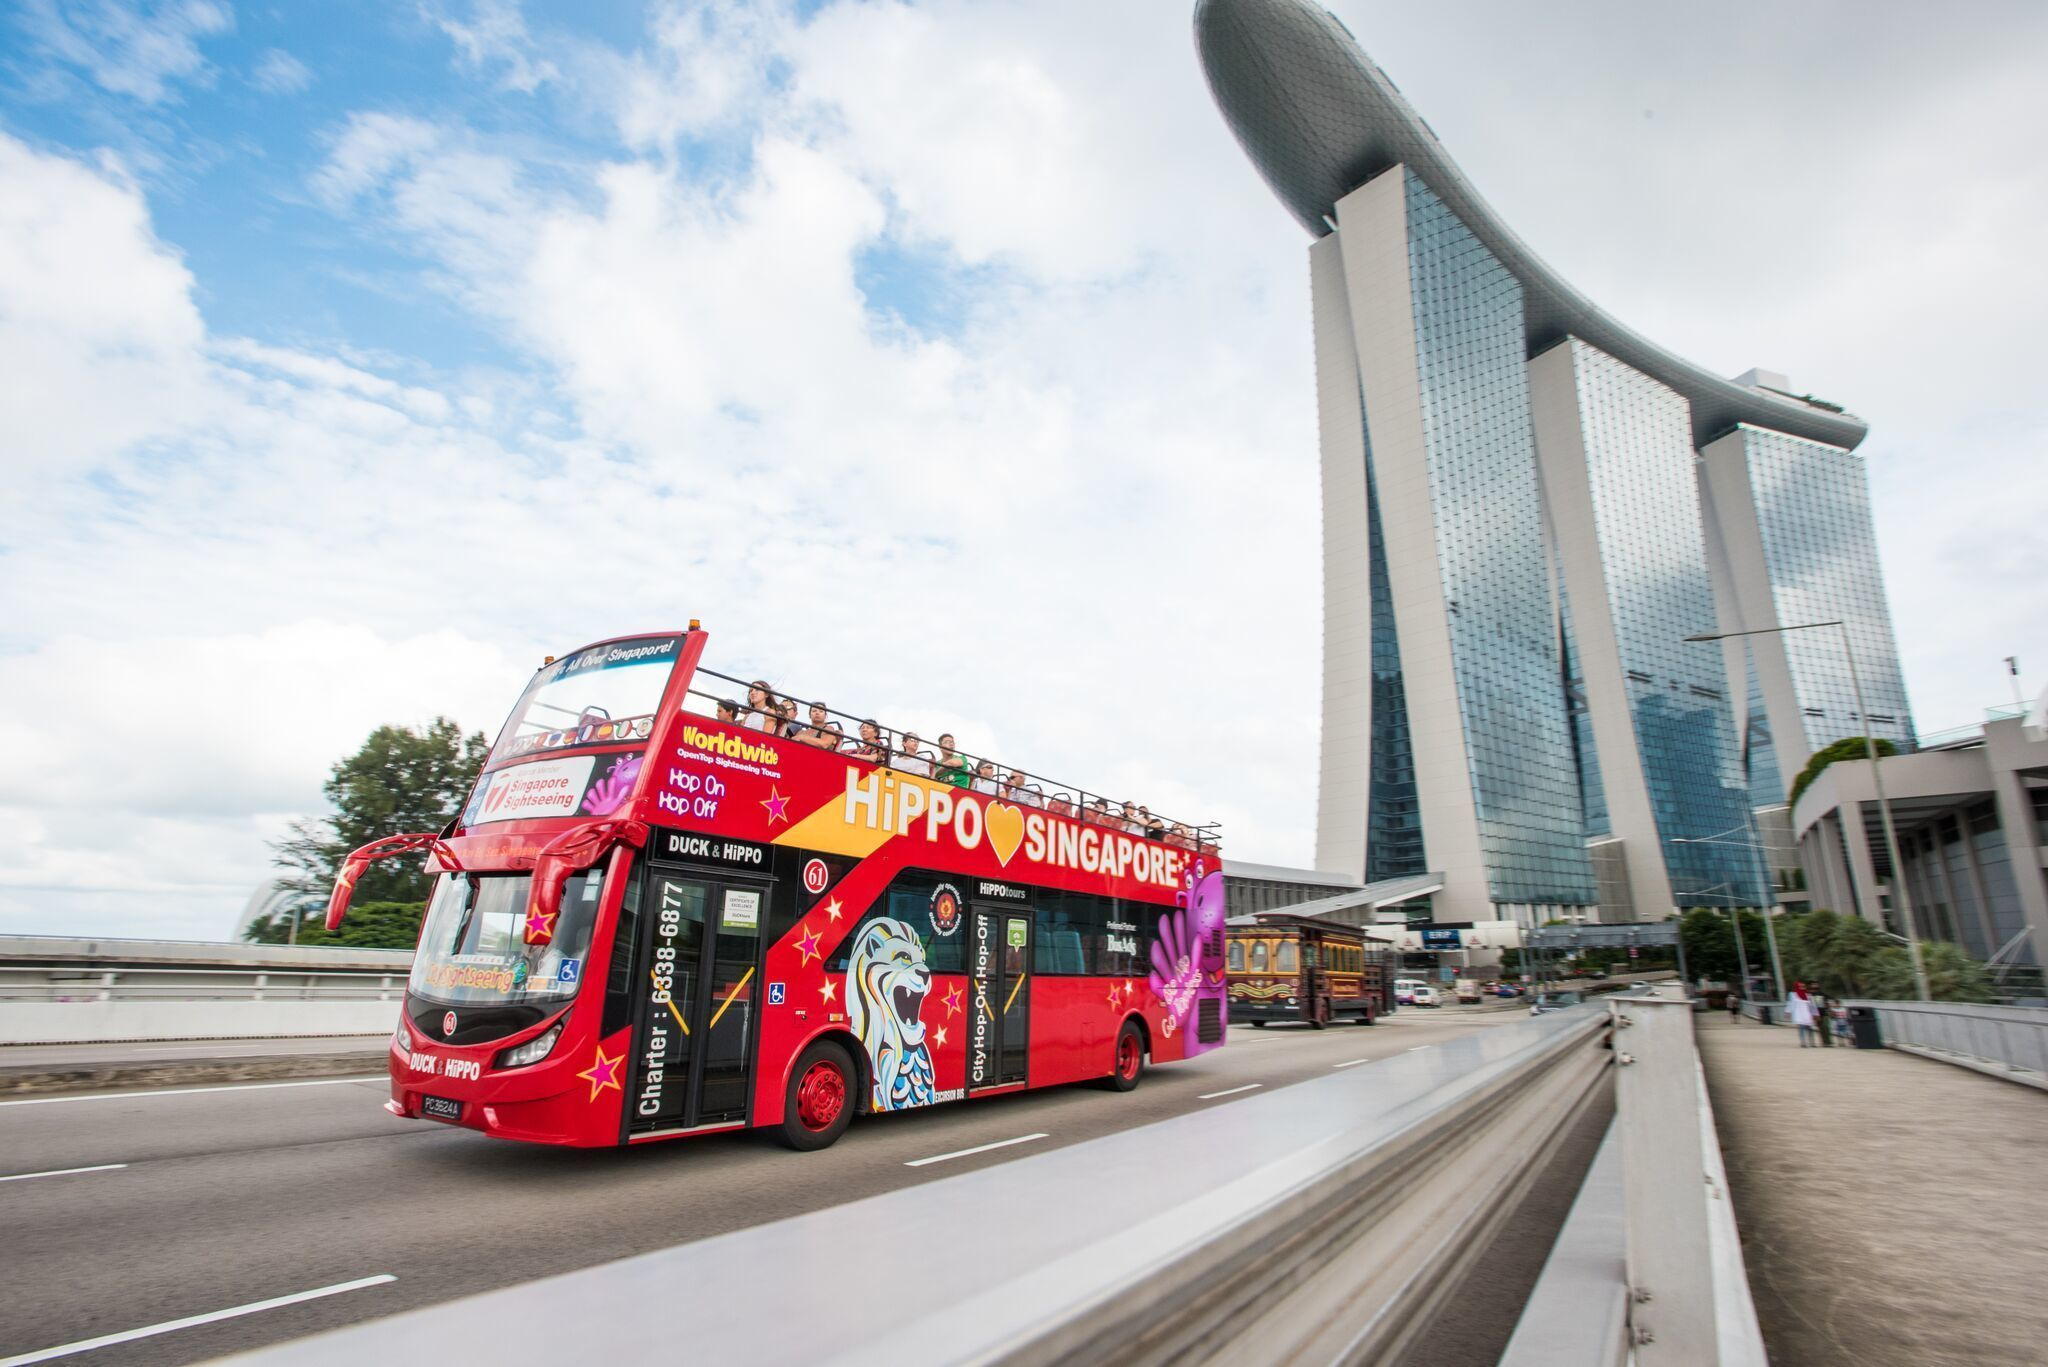 City Sightseeing Singapore Hop-On Hop-Off Bus Tour